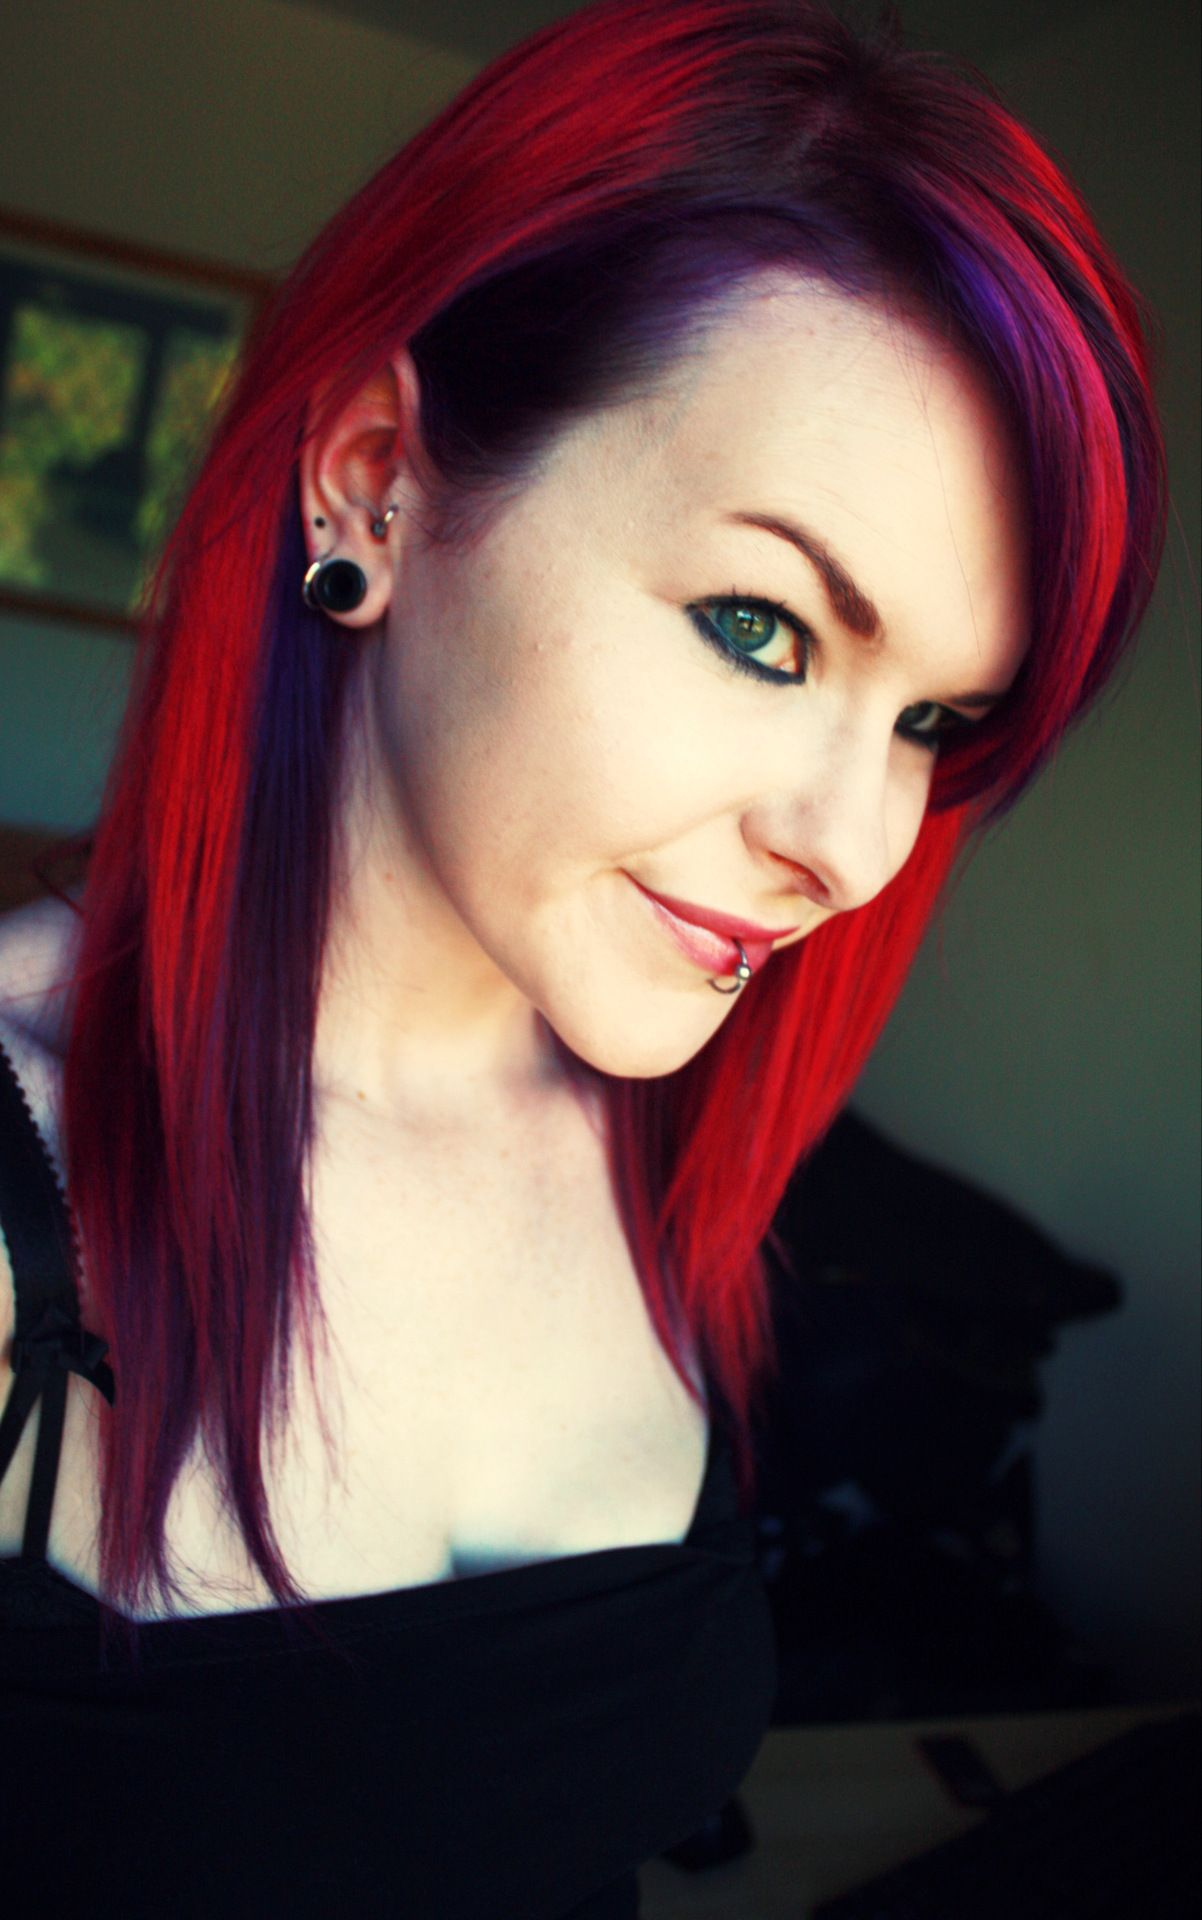 Red on top purple underneath via Not Your Typical Hair Blog